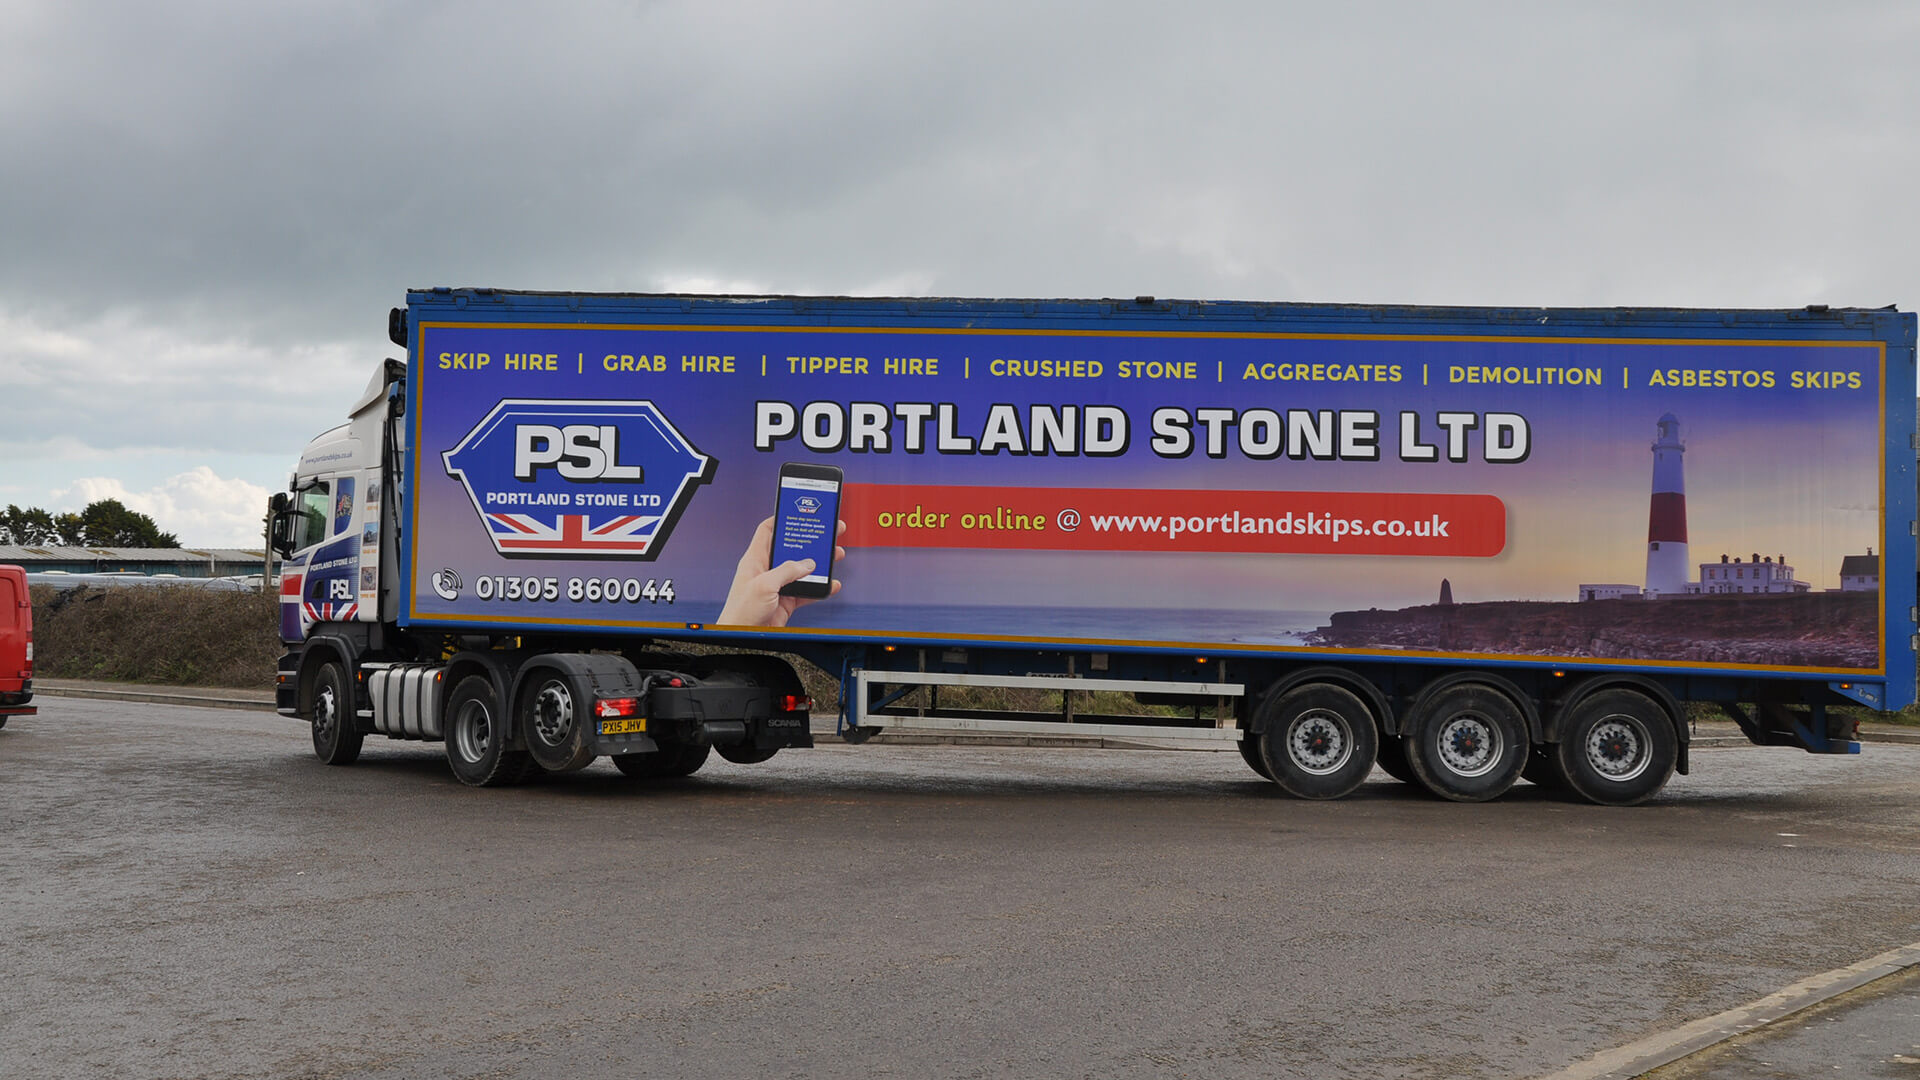 Portland Skips - Walking Floor Trailer added to Growing Fleet - Weymouth Wareham Bridport Devon